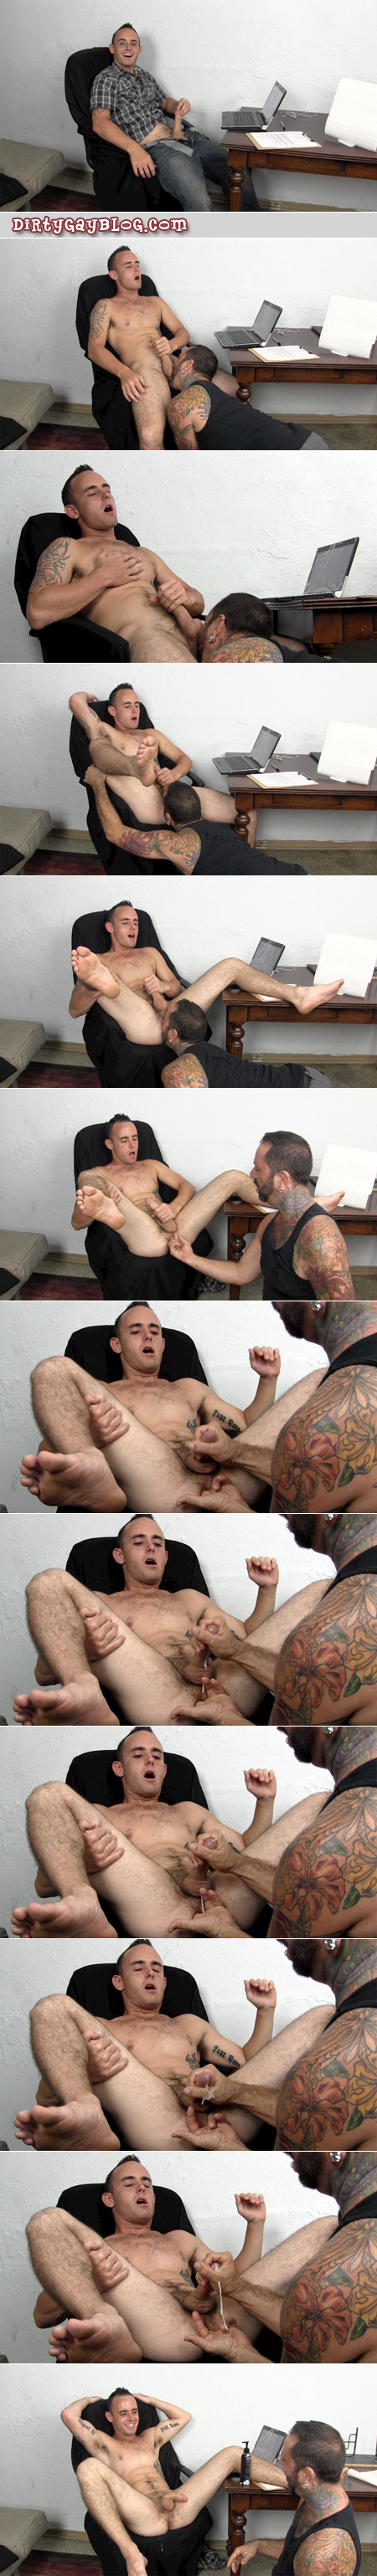 Furry straight guy has his prostate milked by a hairy, heavily tattooed Daddy.